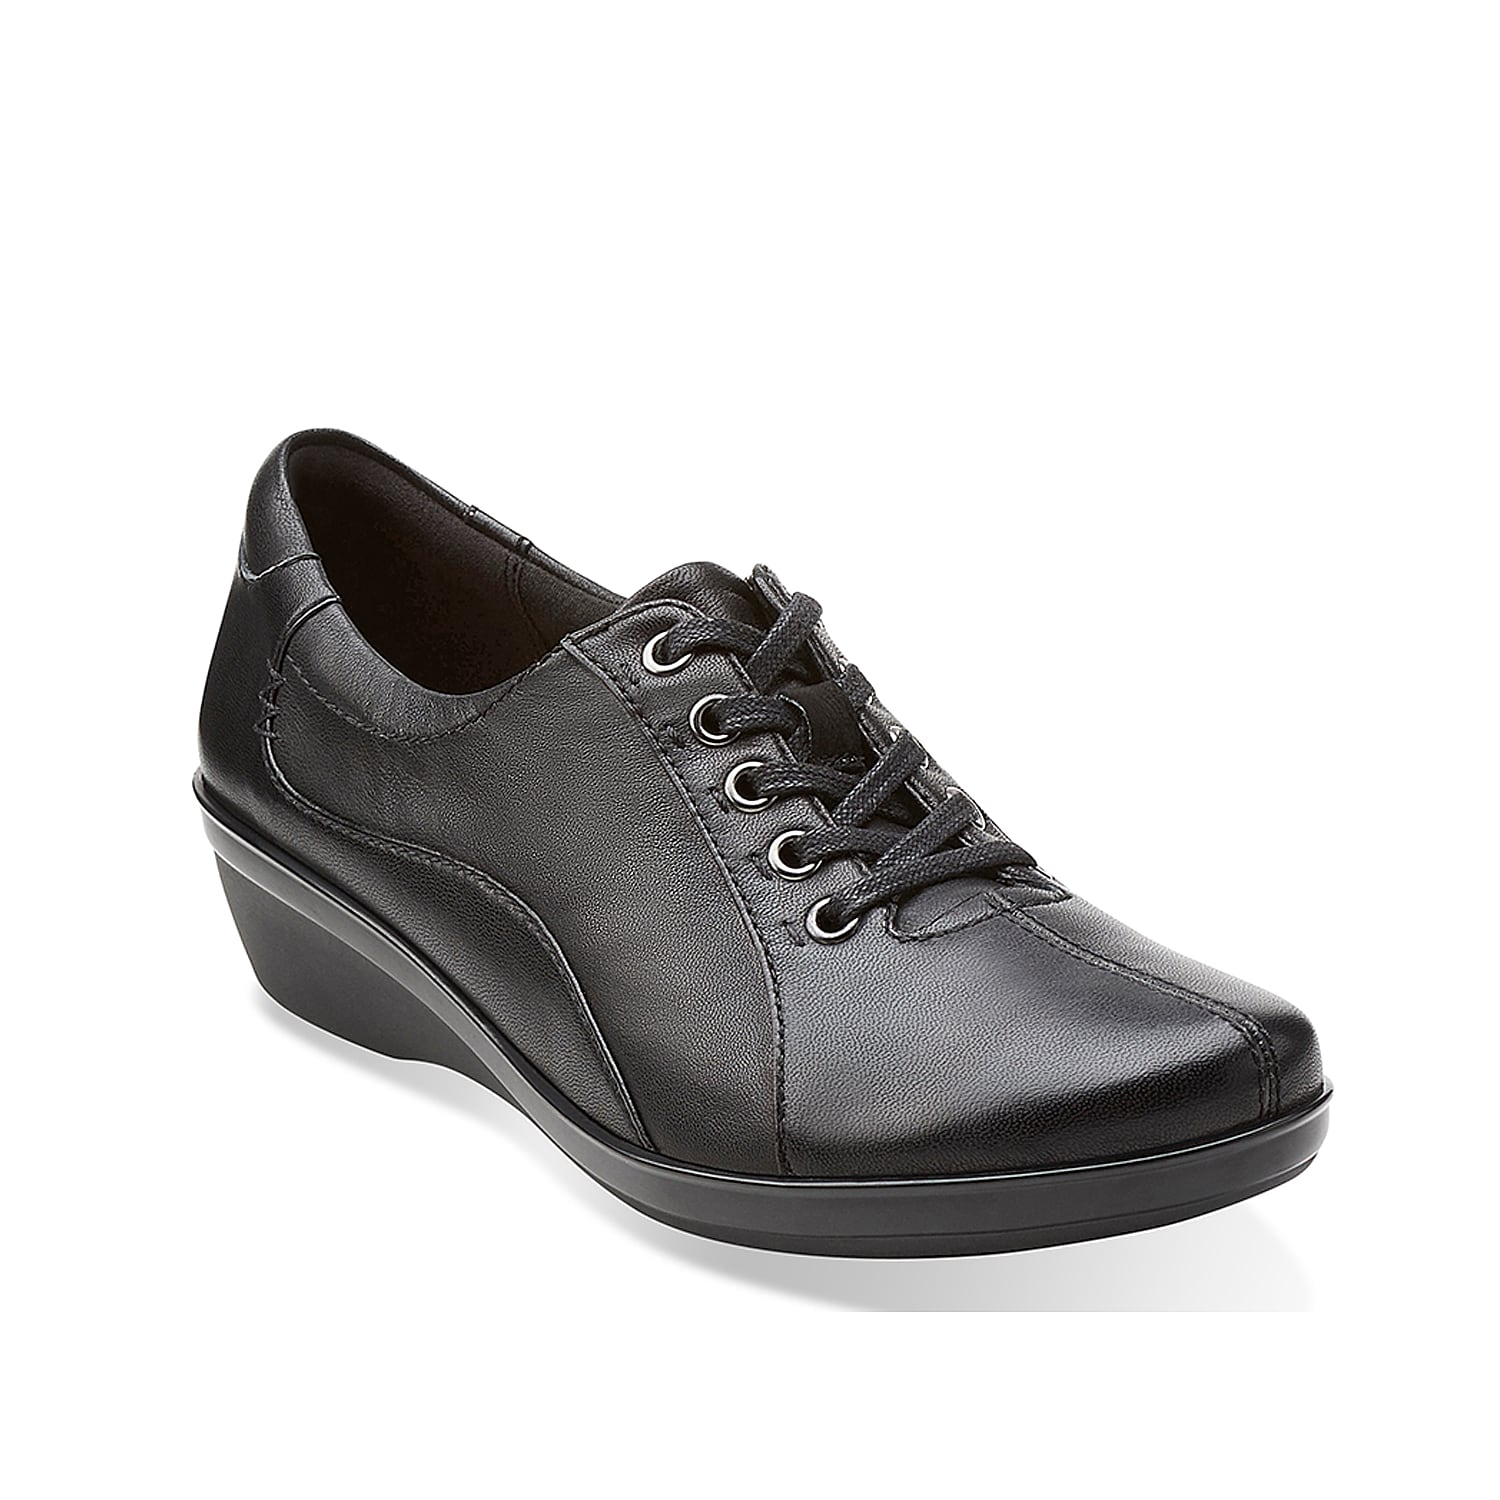 This leather oxford from the Clarks Collection has a sleek, athletic-inspired silhouette that\\\'s right on trend this season.